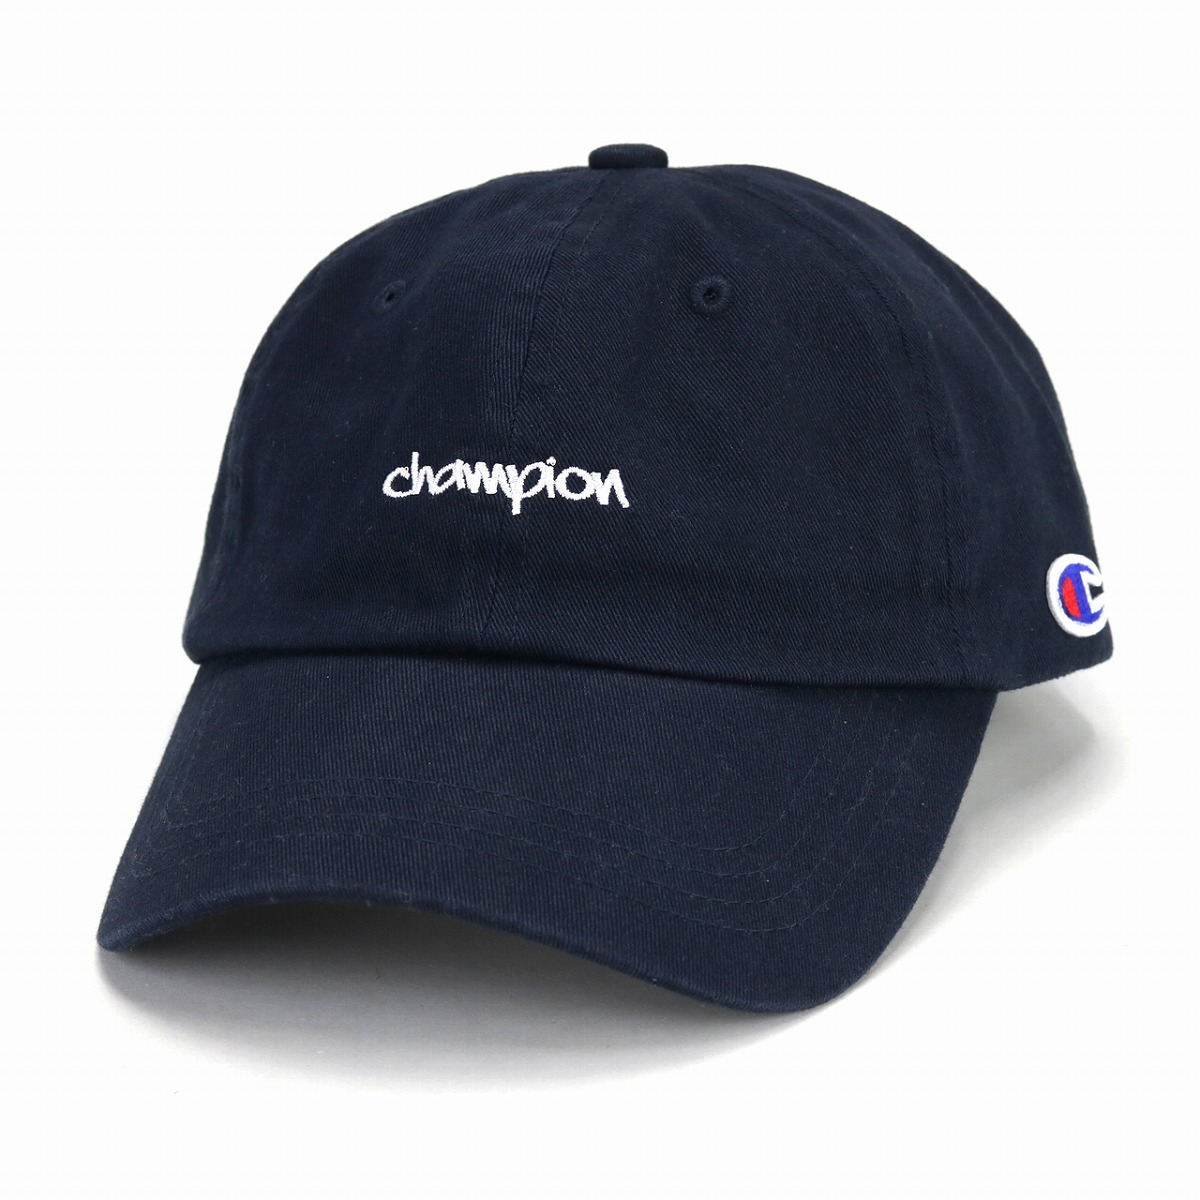 Champion hat cap men champion logo cap Lady s cotton oar season mini-logo baseball  cap ... 7325909ed15